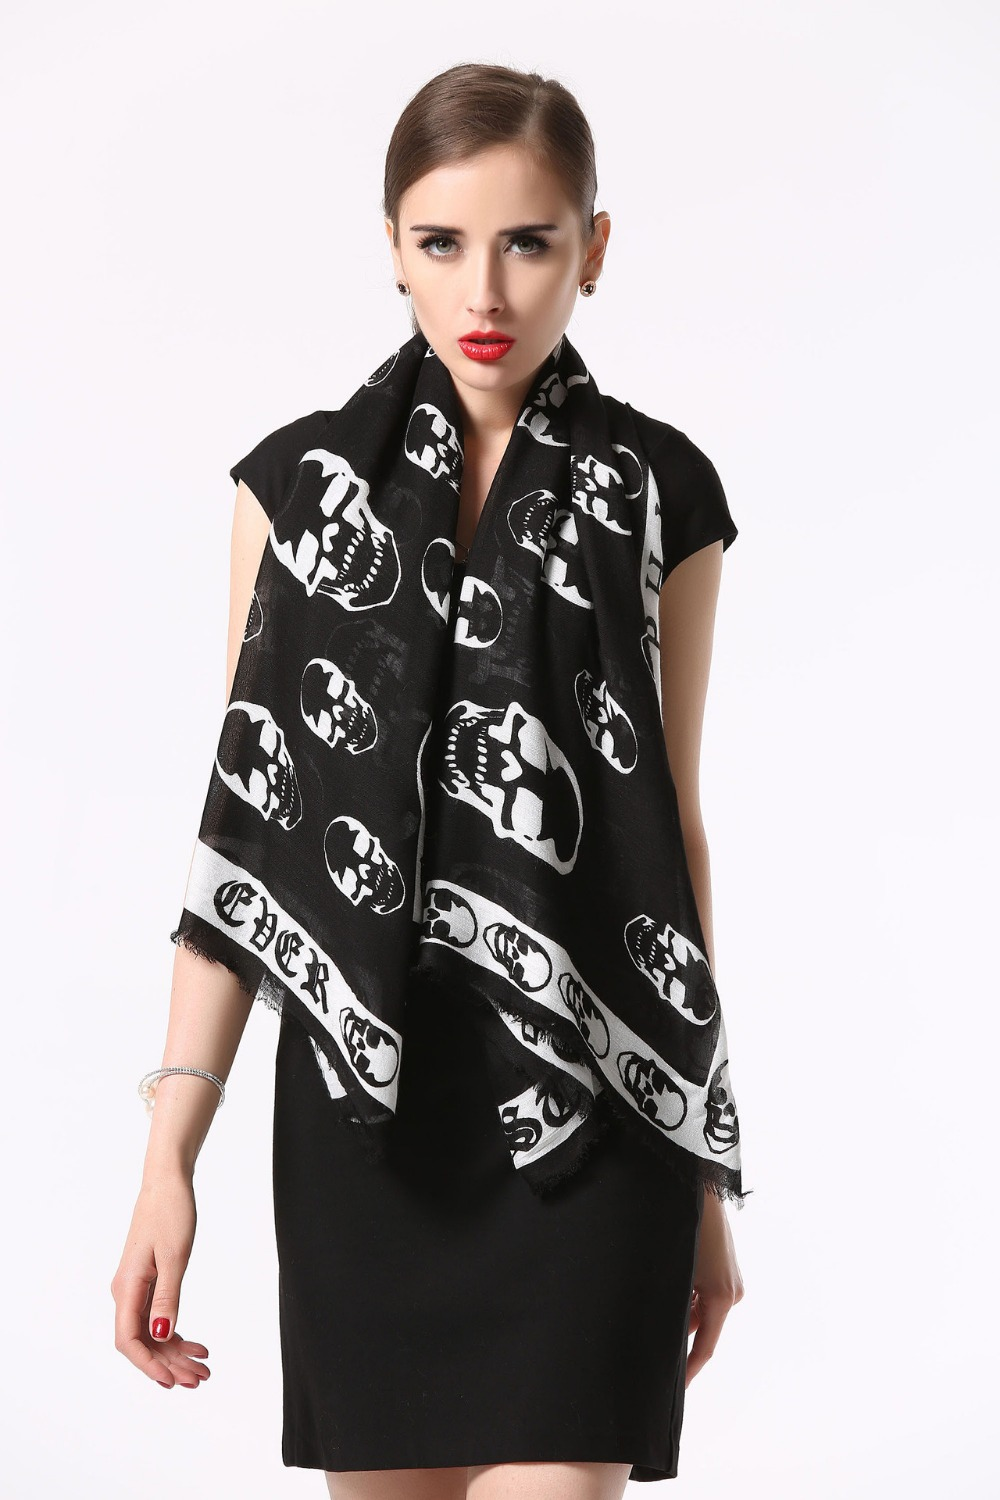 new selling fashion top brand scarf 140 140 square